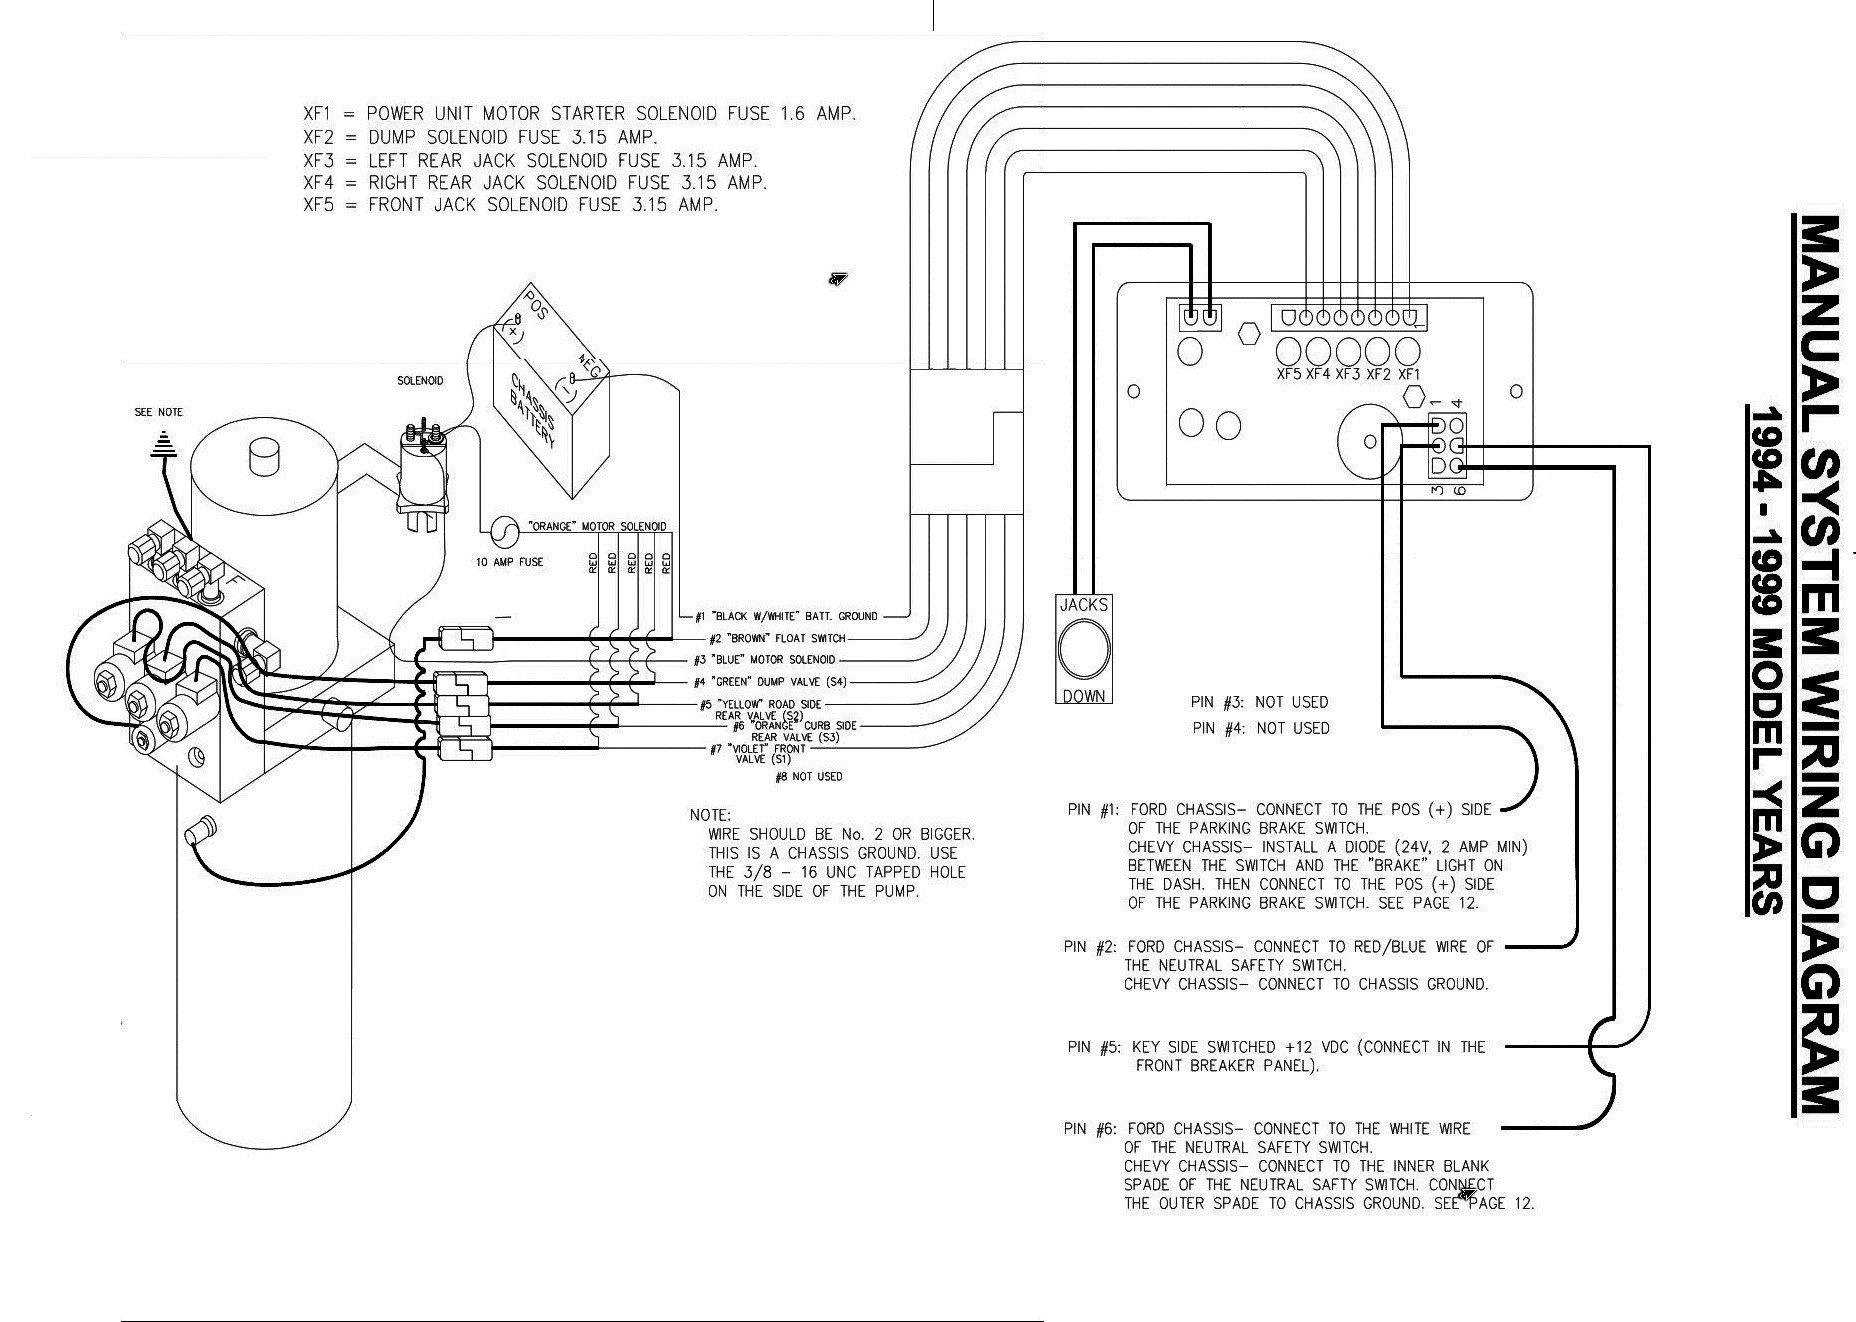 1996 prowler travel trailer wiring diagram